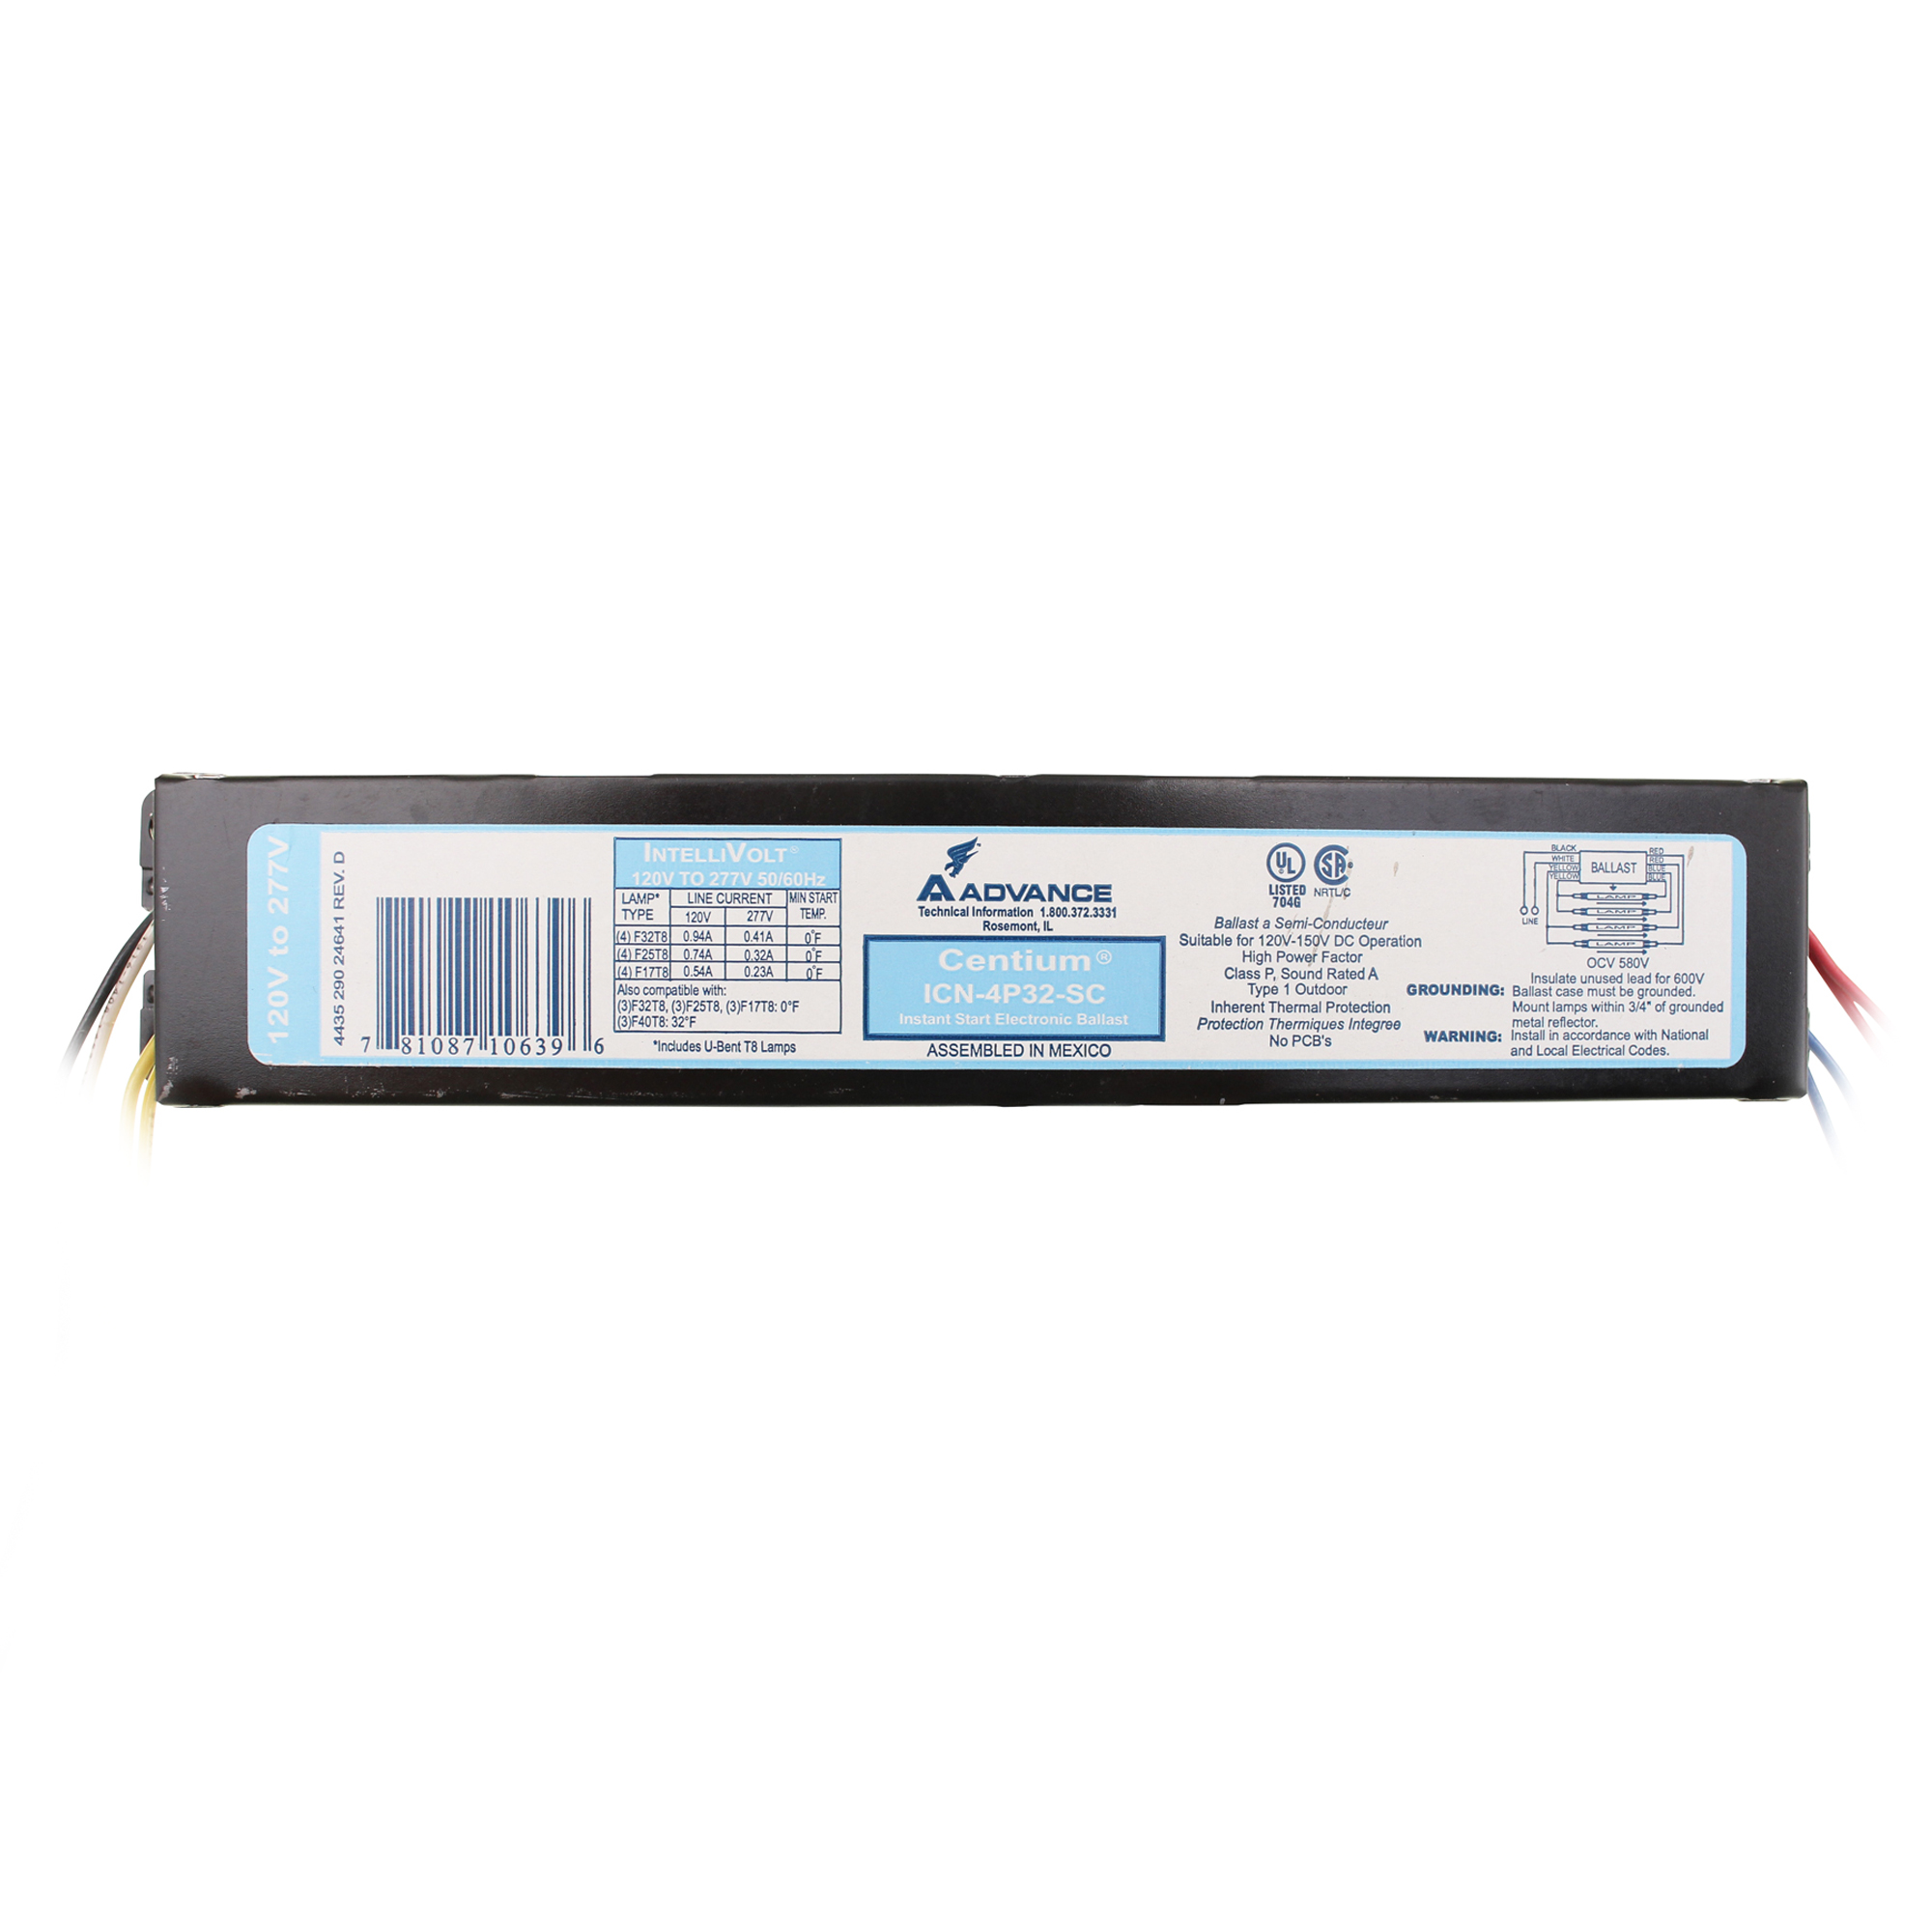 t8 ballast wiring diagram for icn 2p32 n philips ballast wiring diagram icn 2p32 n advance